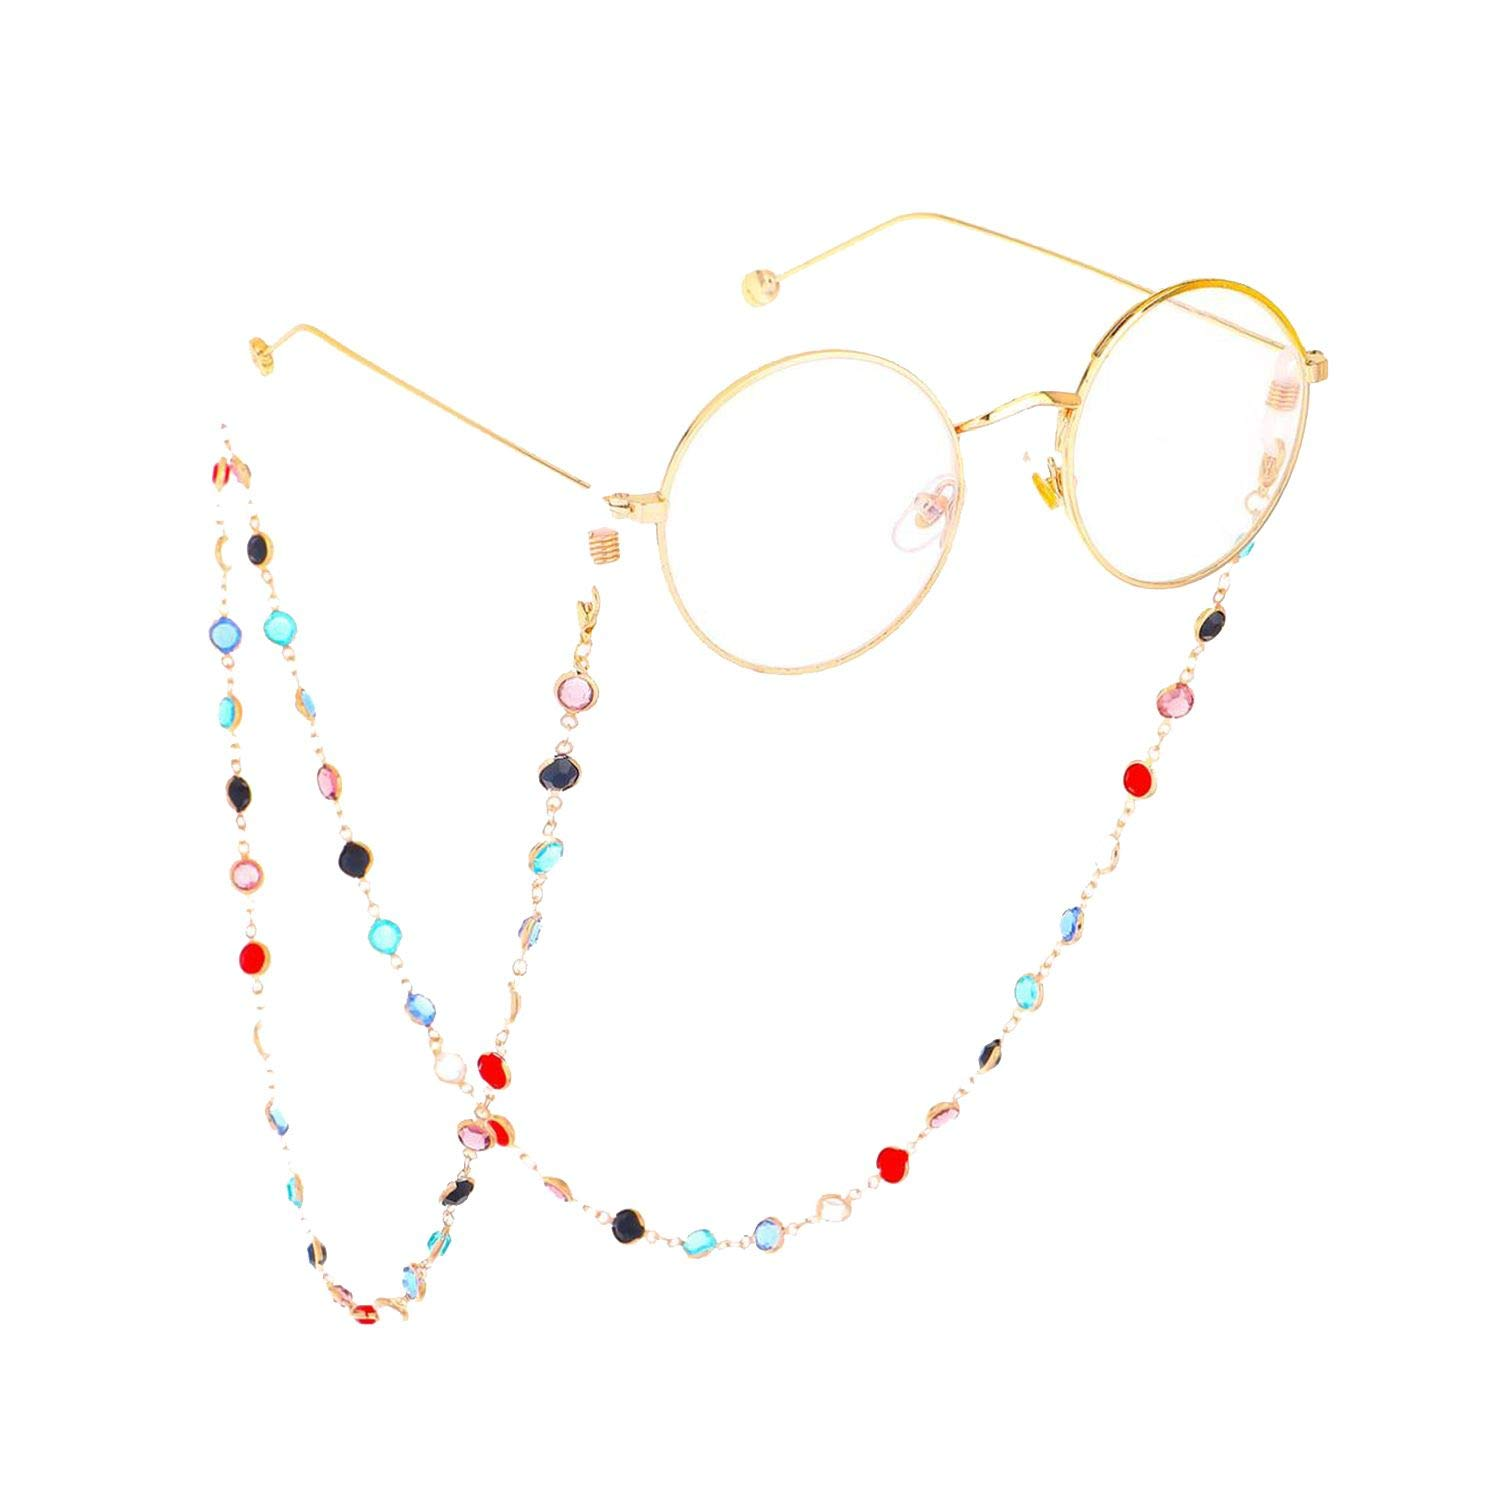 Glasses Rope Hanging Neck Simple Colorful Glass Beads Chain Sunglasses Chain Gold Plated Glasses Chain,Gold by RHYS DOBSON